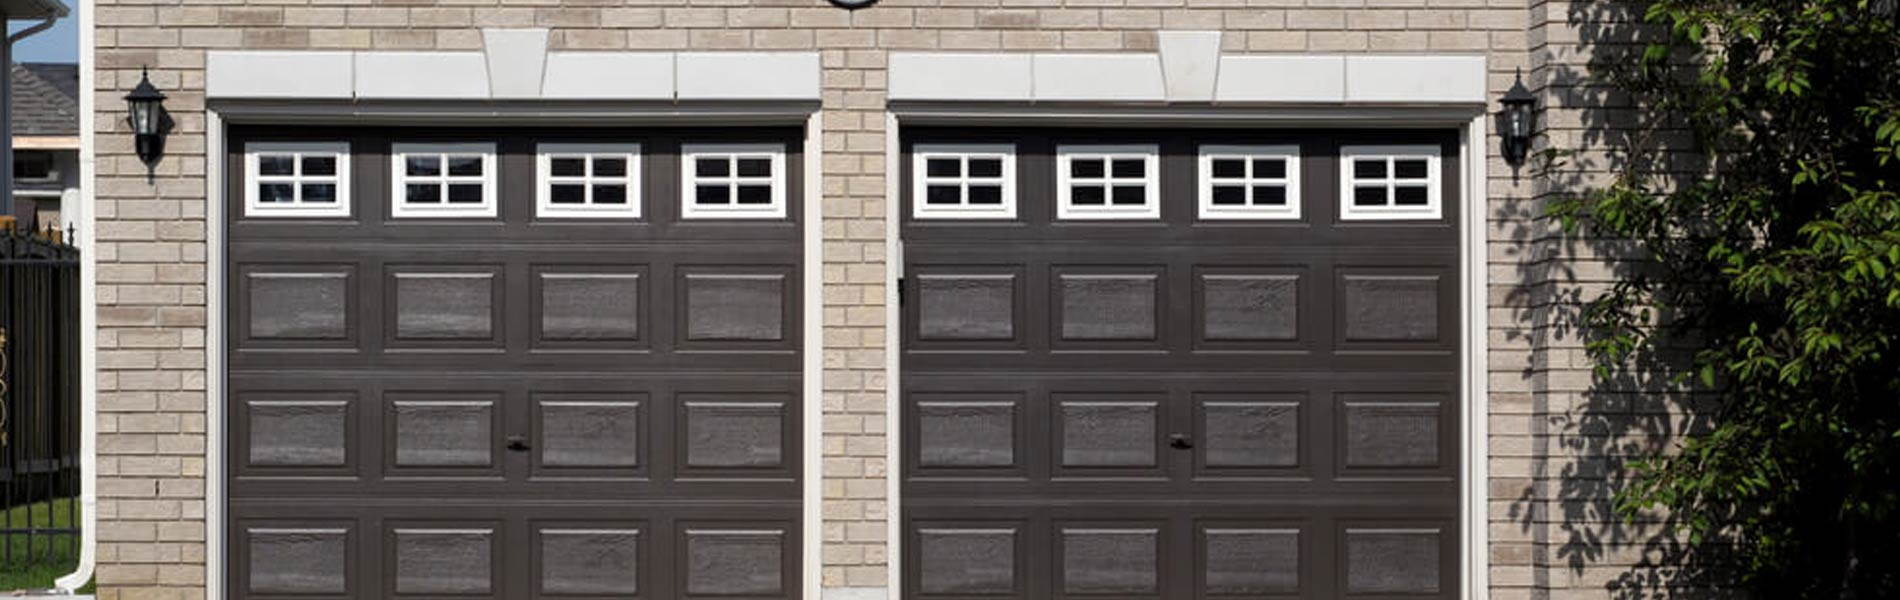 Expert Garage Doors Repairs Groveland, MA 978-716-3025